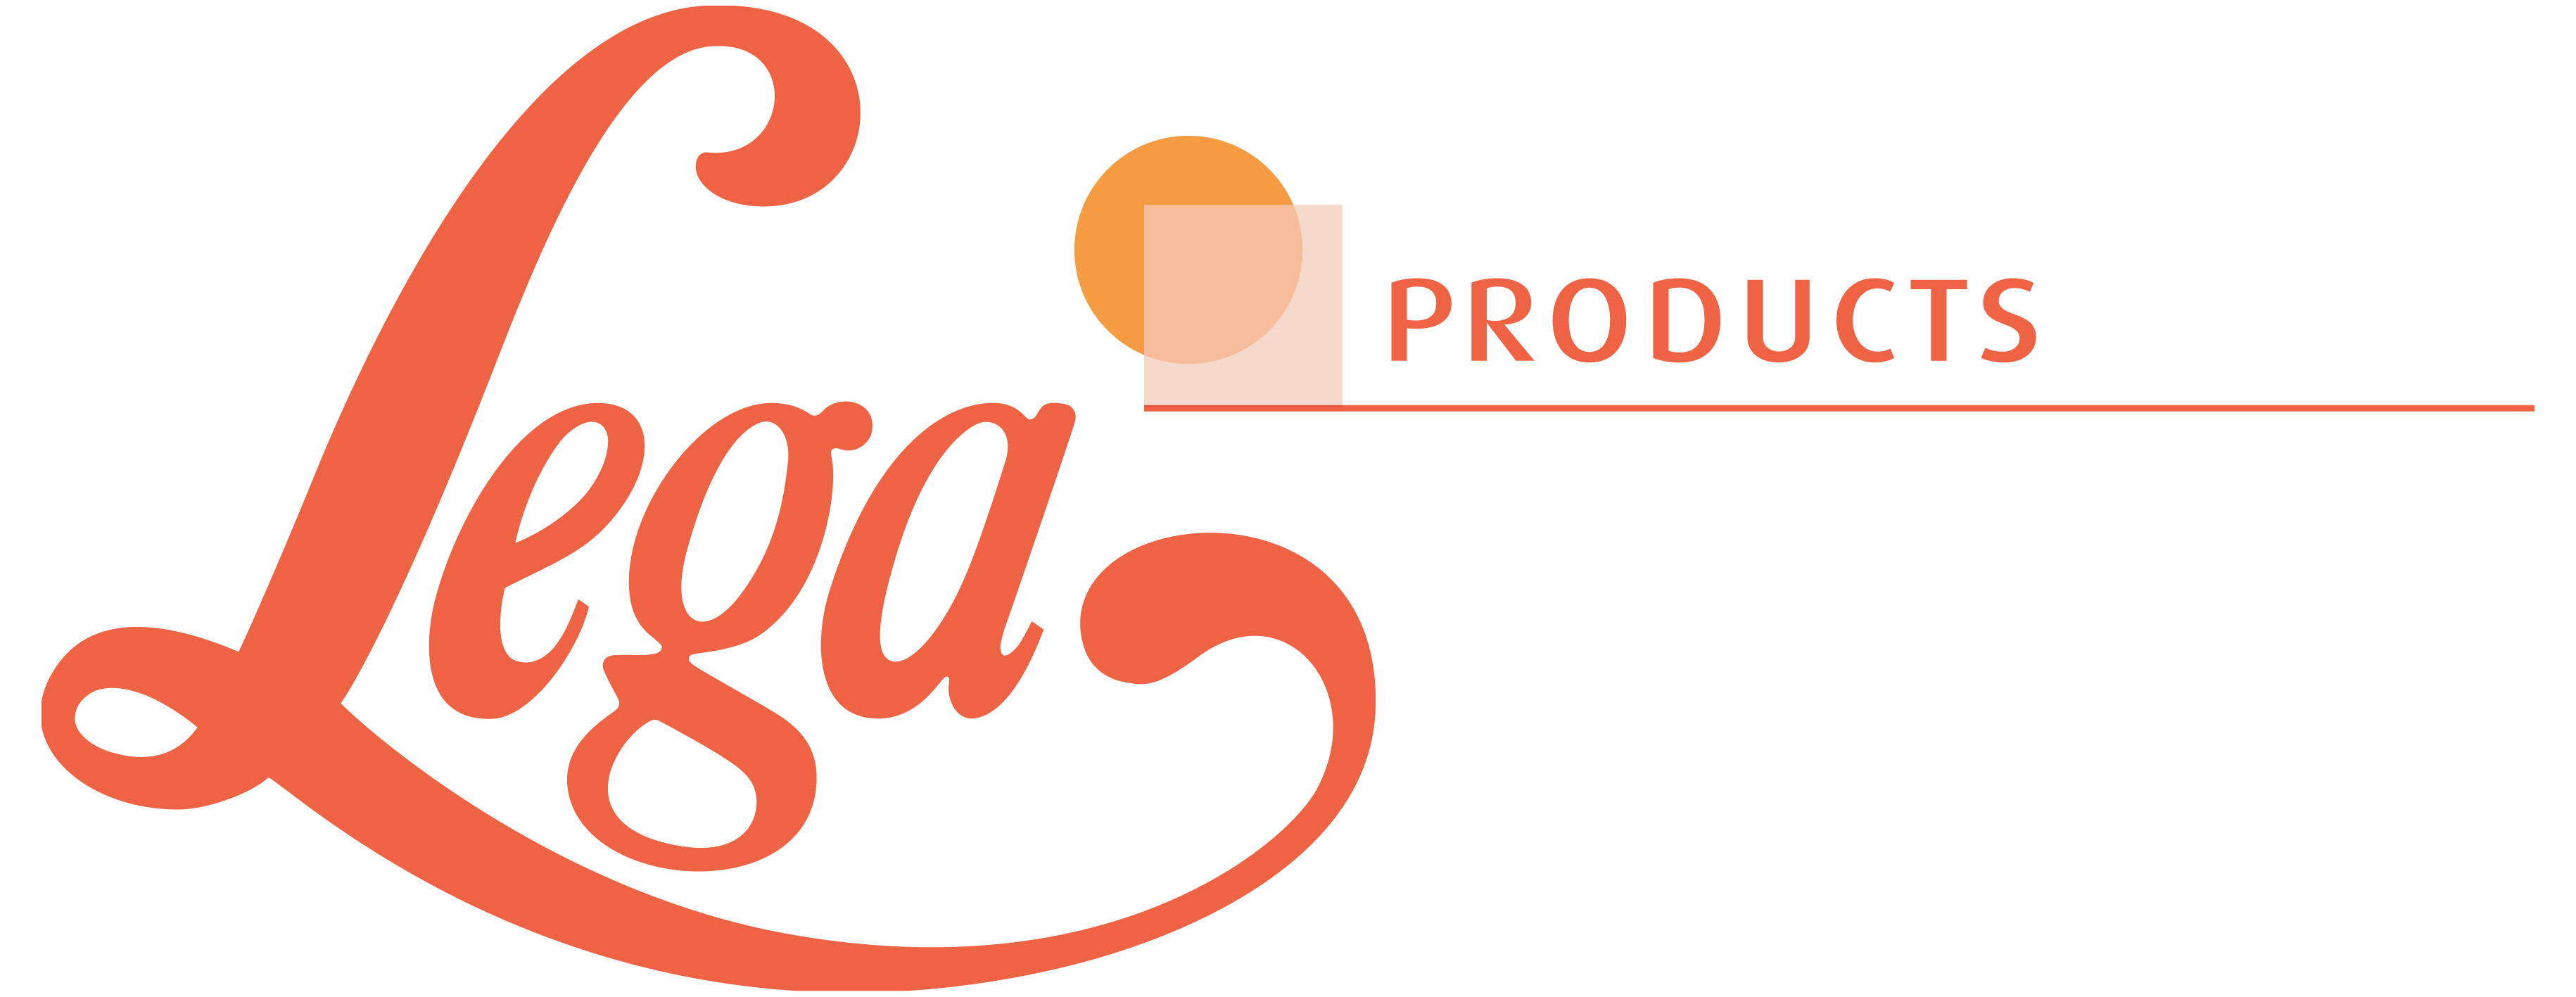 Lega Products